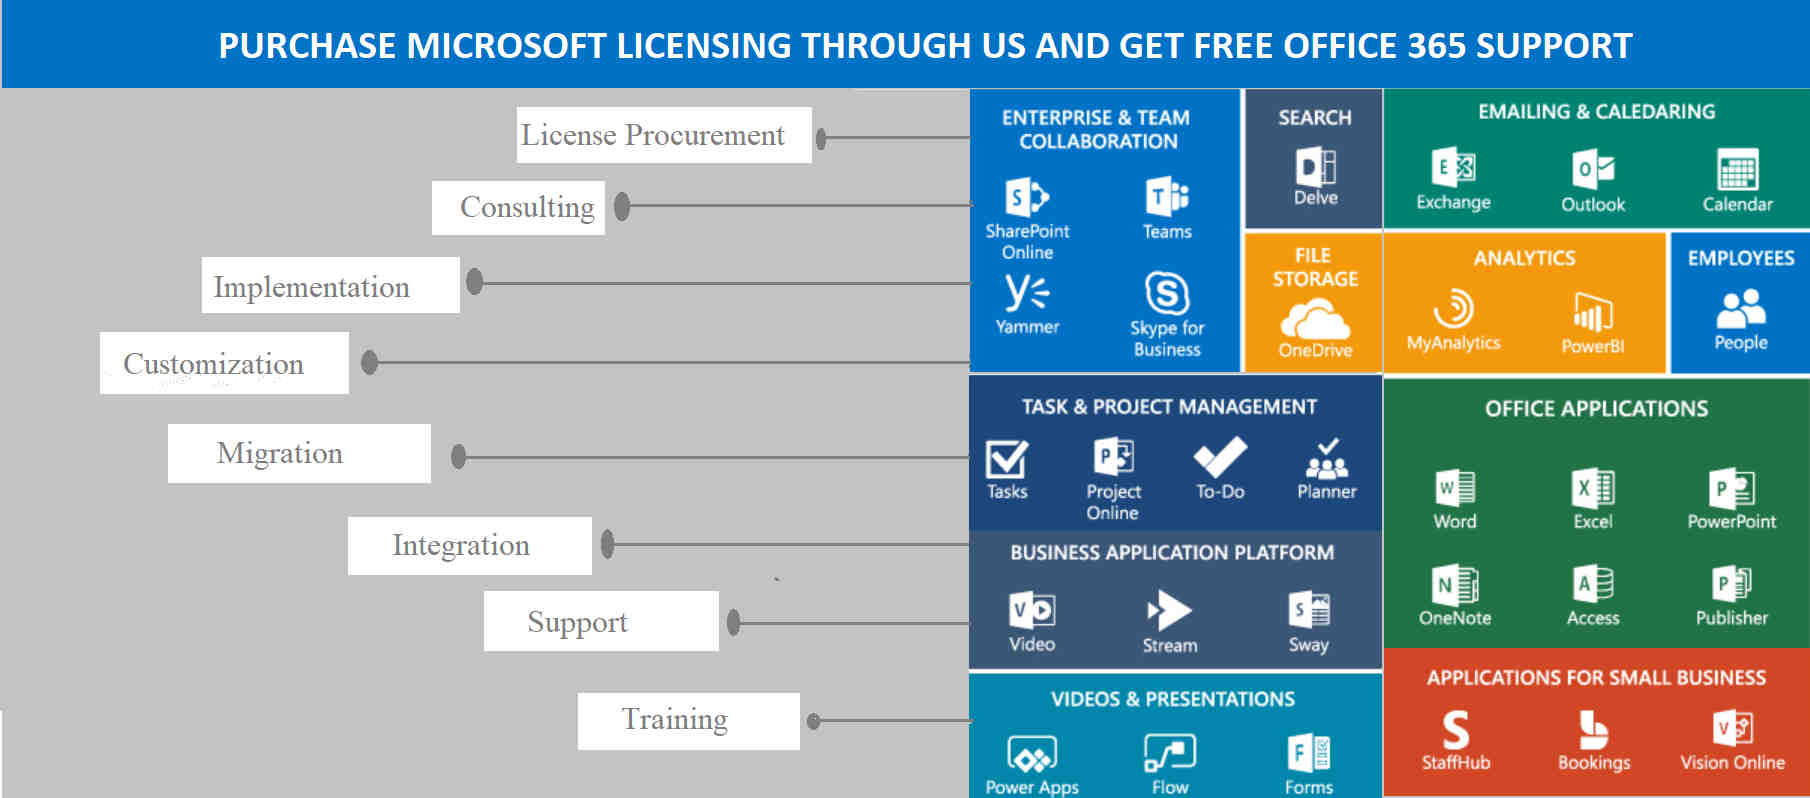 xekera services of microsot office 365